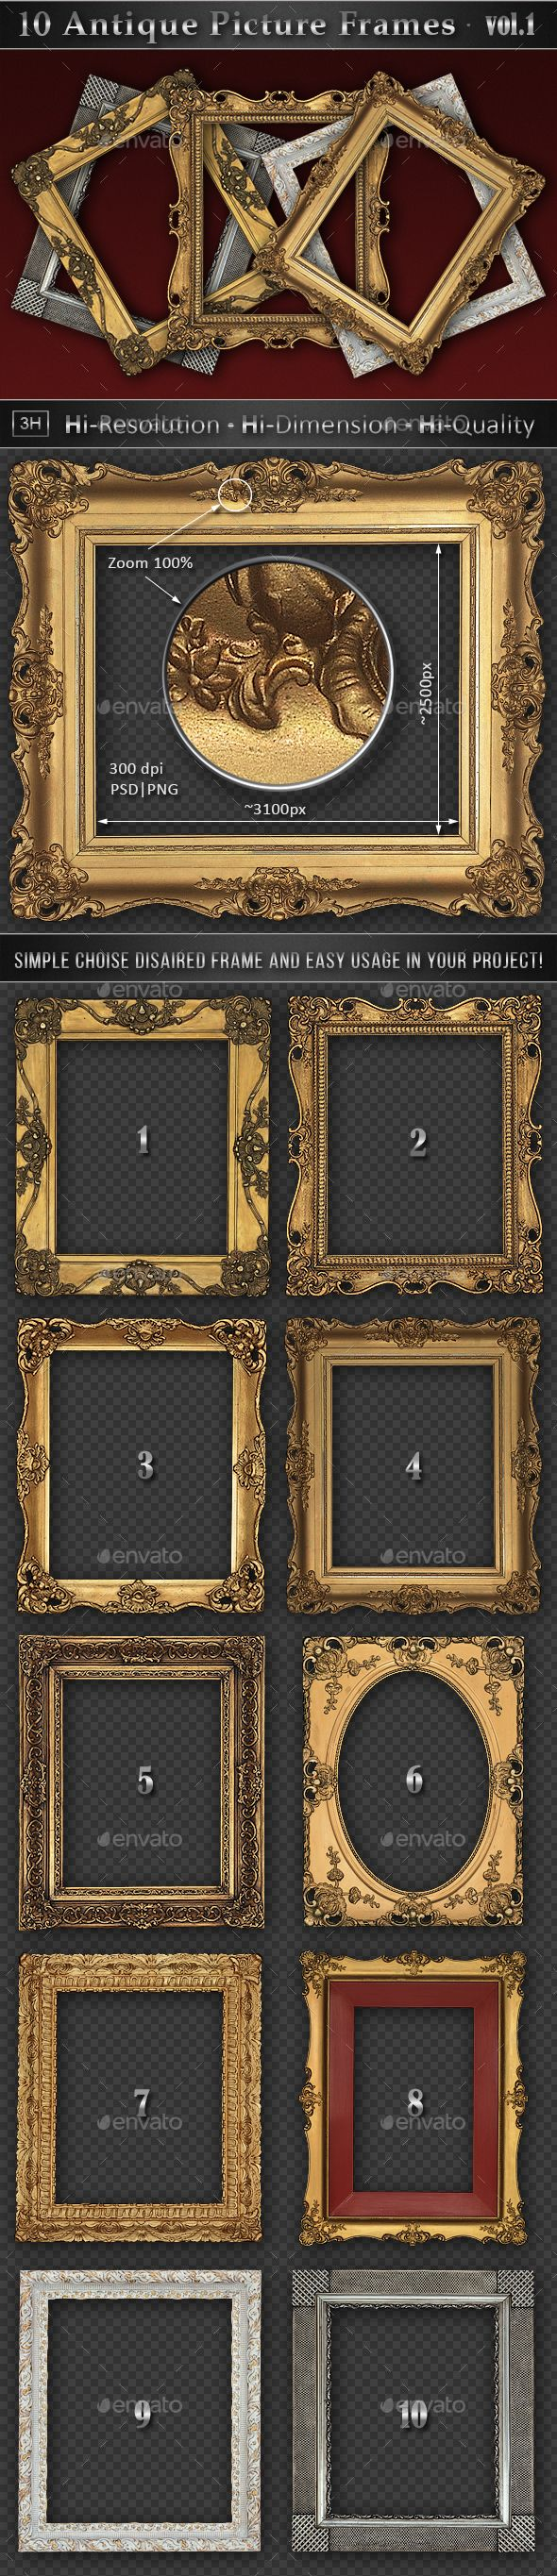 10 Antique Classic Picture Frames vol.1